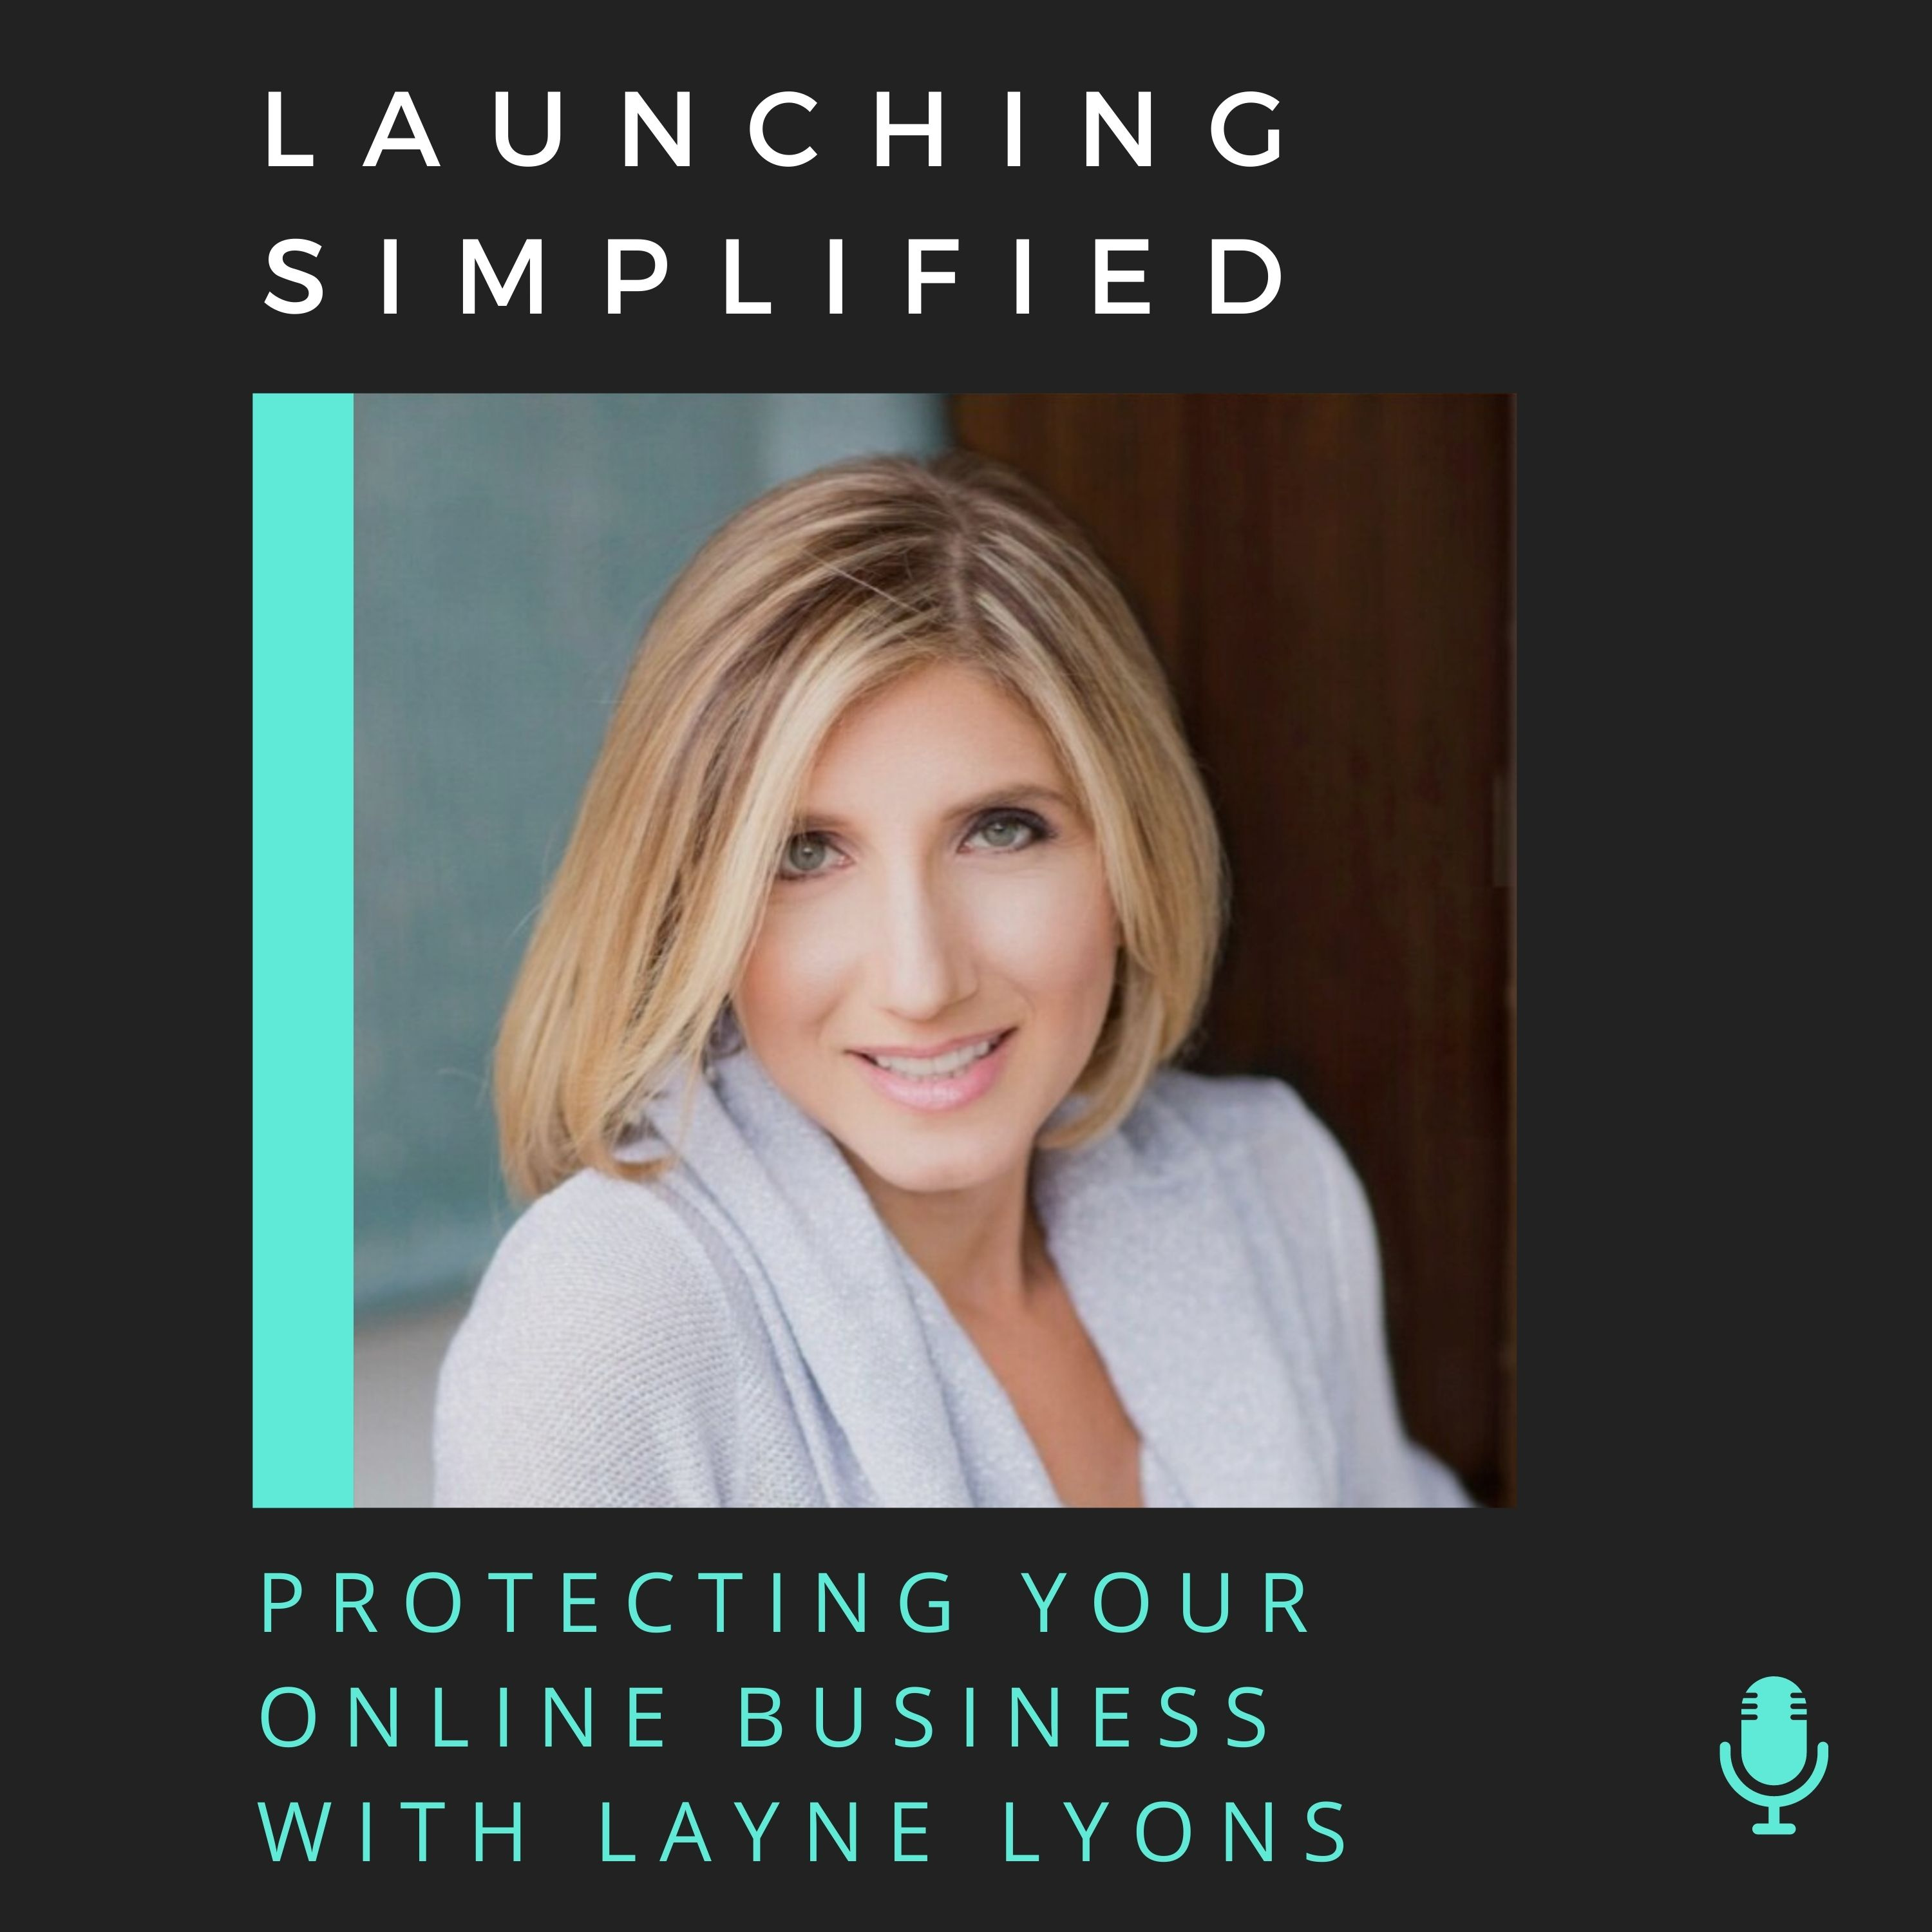 Protecting Your Online Business with Layne Lyons